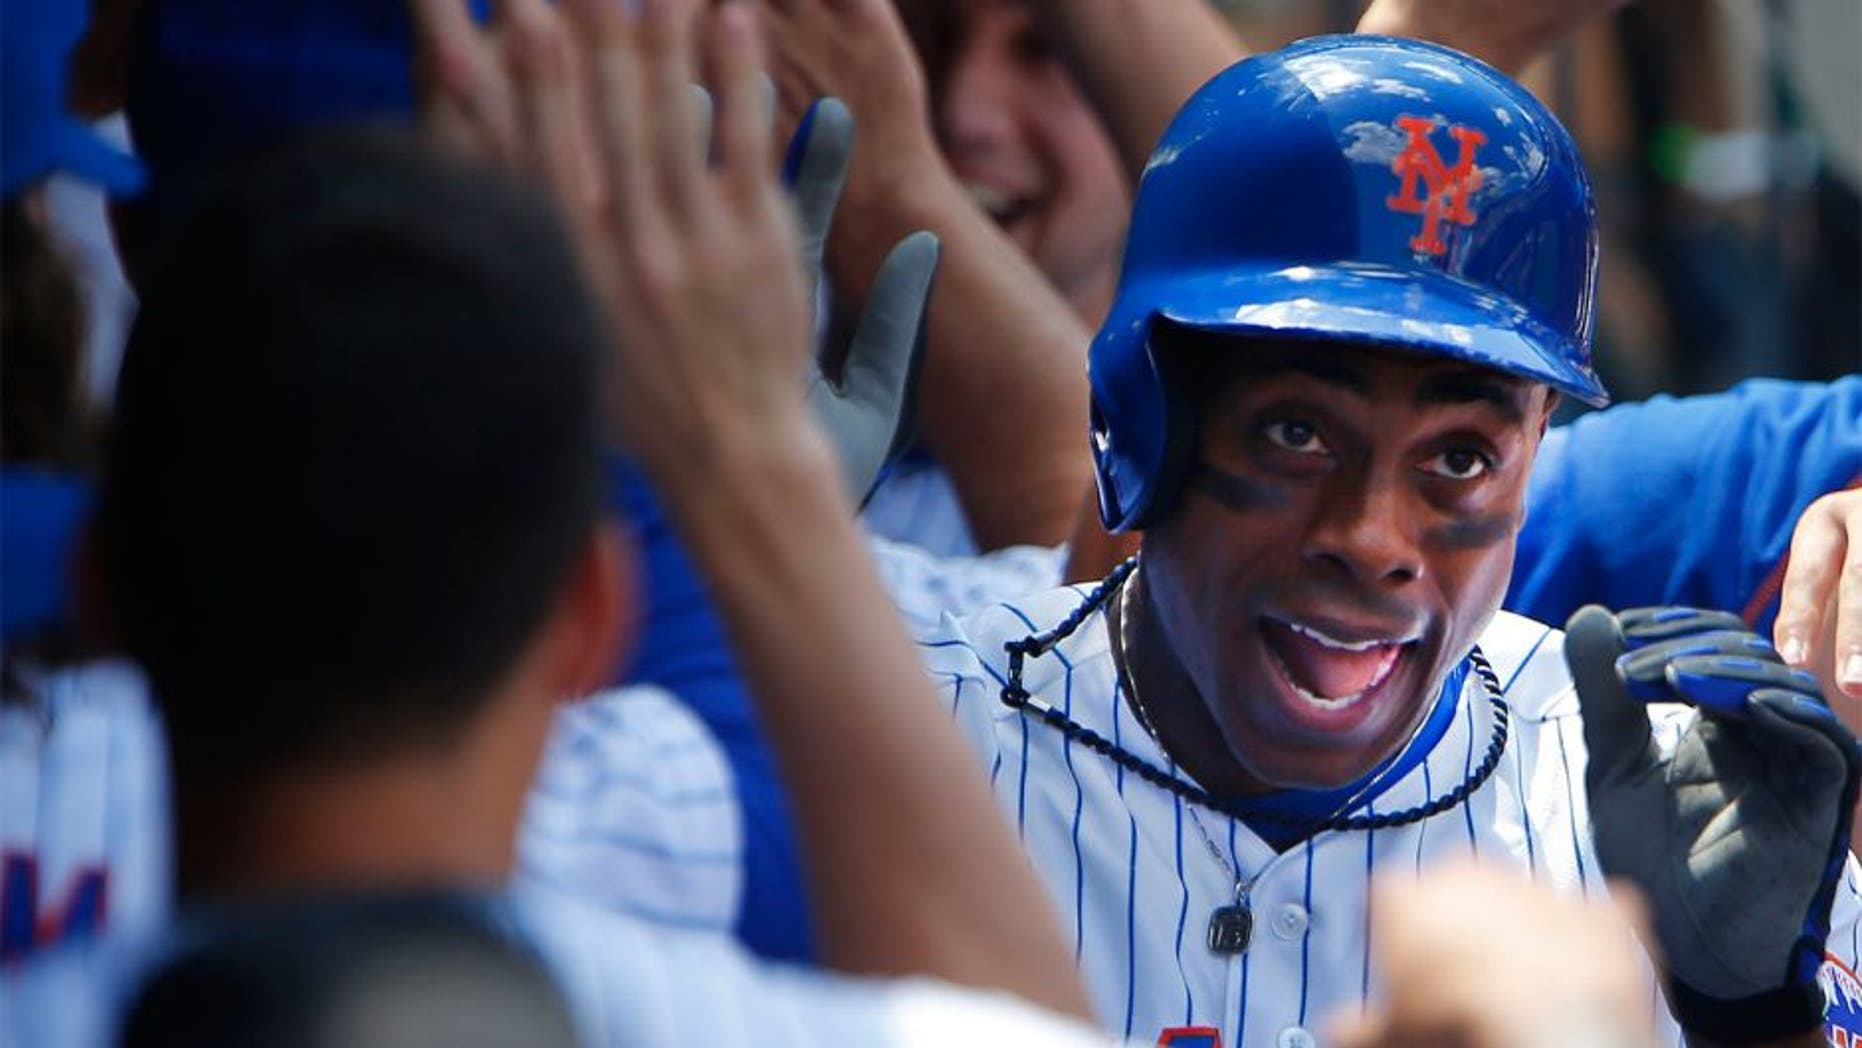 Aug 13, 2015; New York City, NY, USA; New York Mets right fielder Curtis Granderson (3) is congratulated in the dugout by teammates after his two run home run in the fourth inning against the Colorado Rockies at Citi Field. Mandatory Credit: Noah K. Murray-USA TODAY Sports